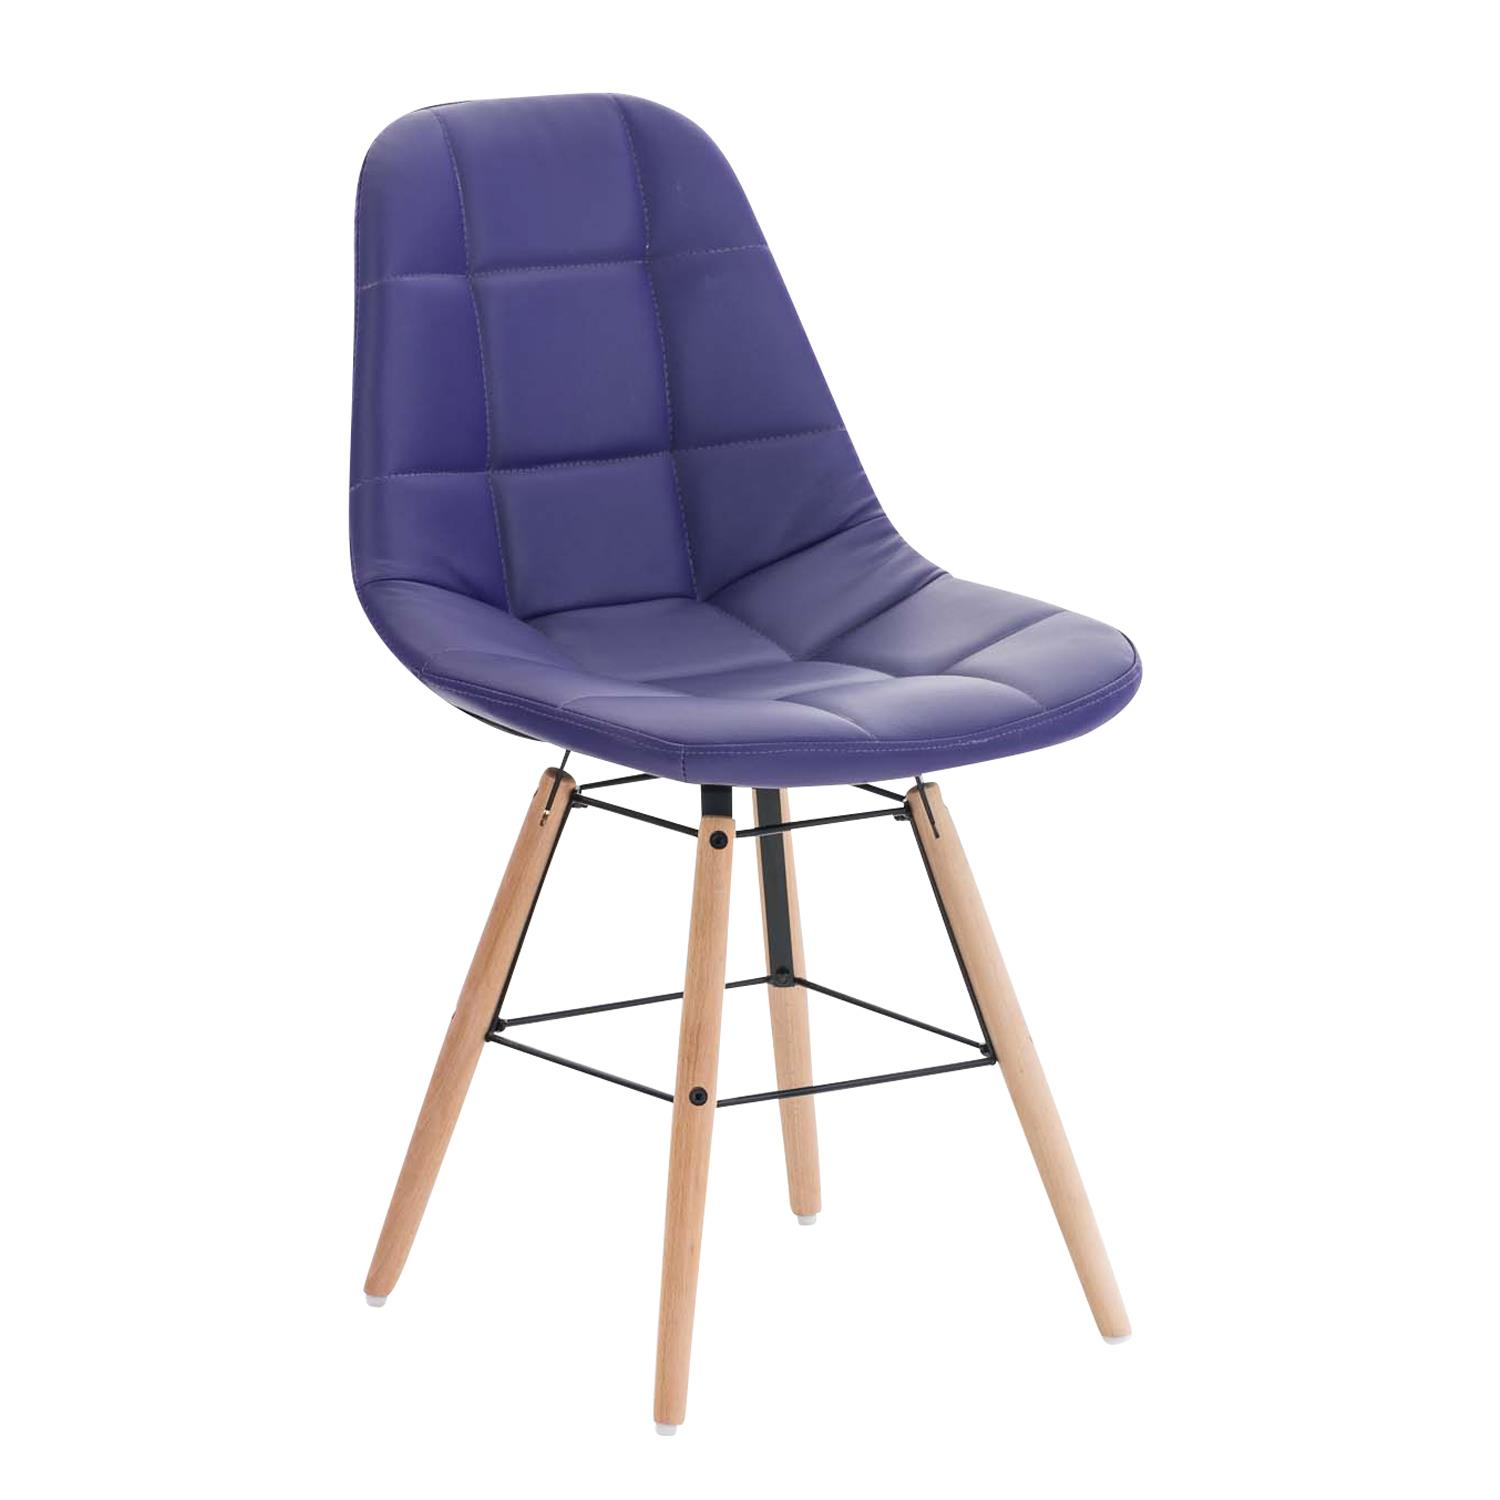 Silla de Confidente TOMMY PIEL, Exclusivo Diseño, Color Morado